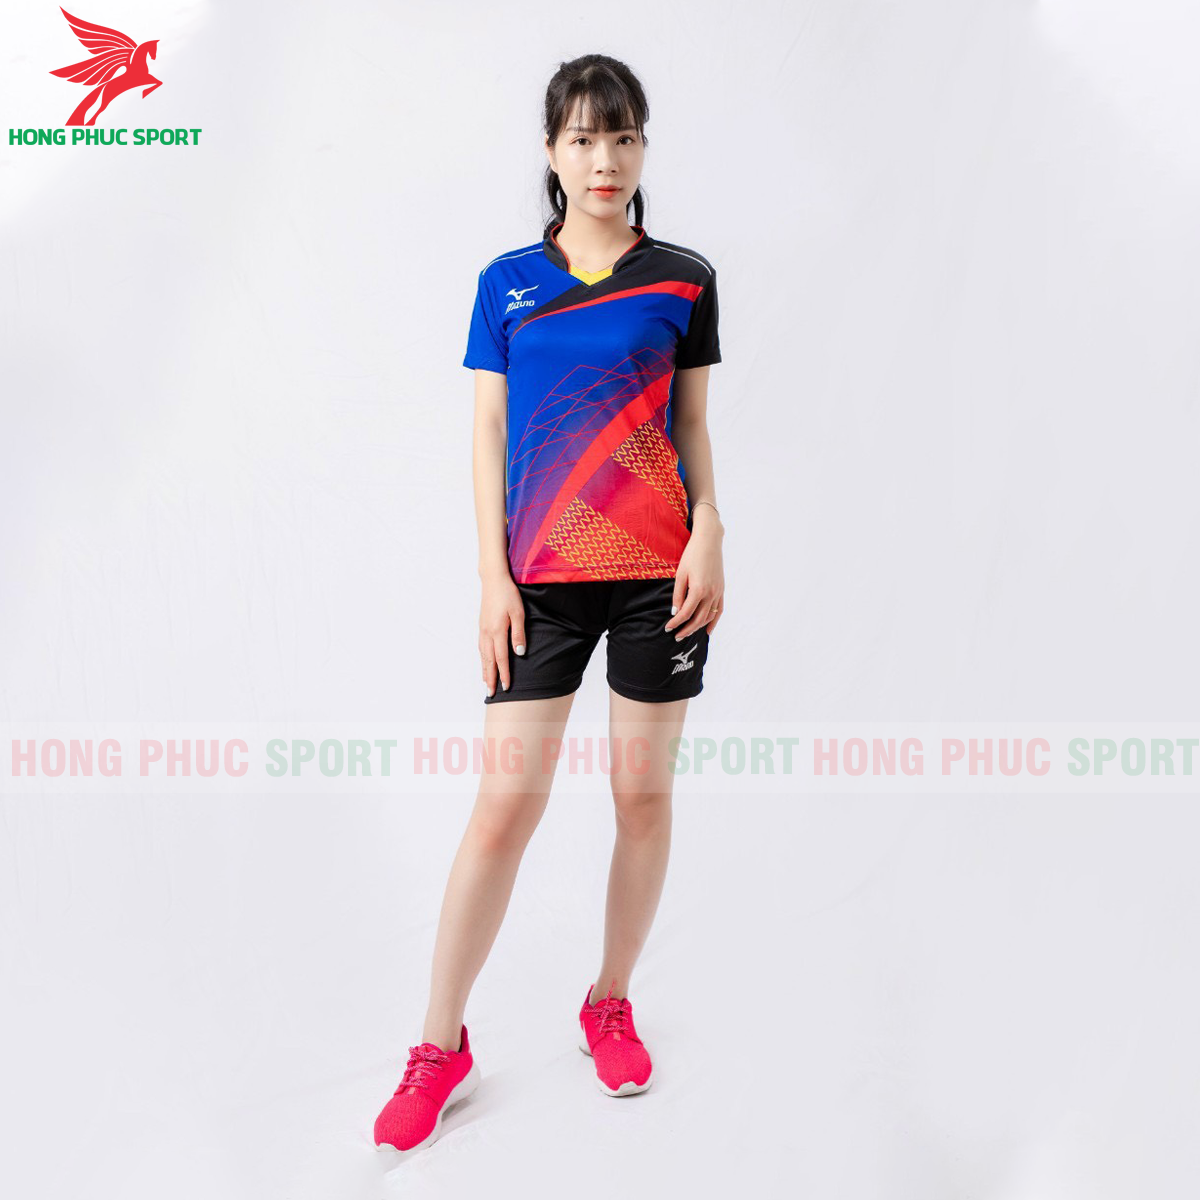 https://cdn.hongphucsport.com/unsafe/s4.shopbay.vn/files/285/quan-ao-bong-chuyen-mizuno-2021-mau-xanh-3-607507657f23a.png